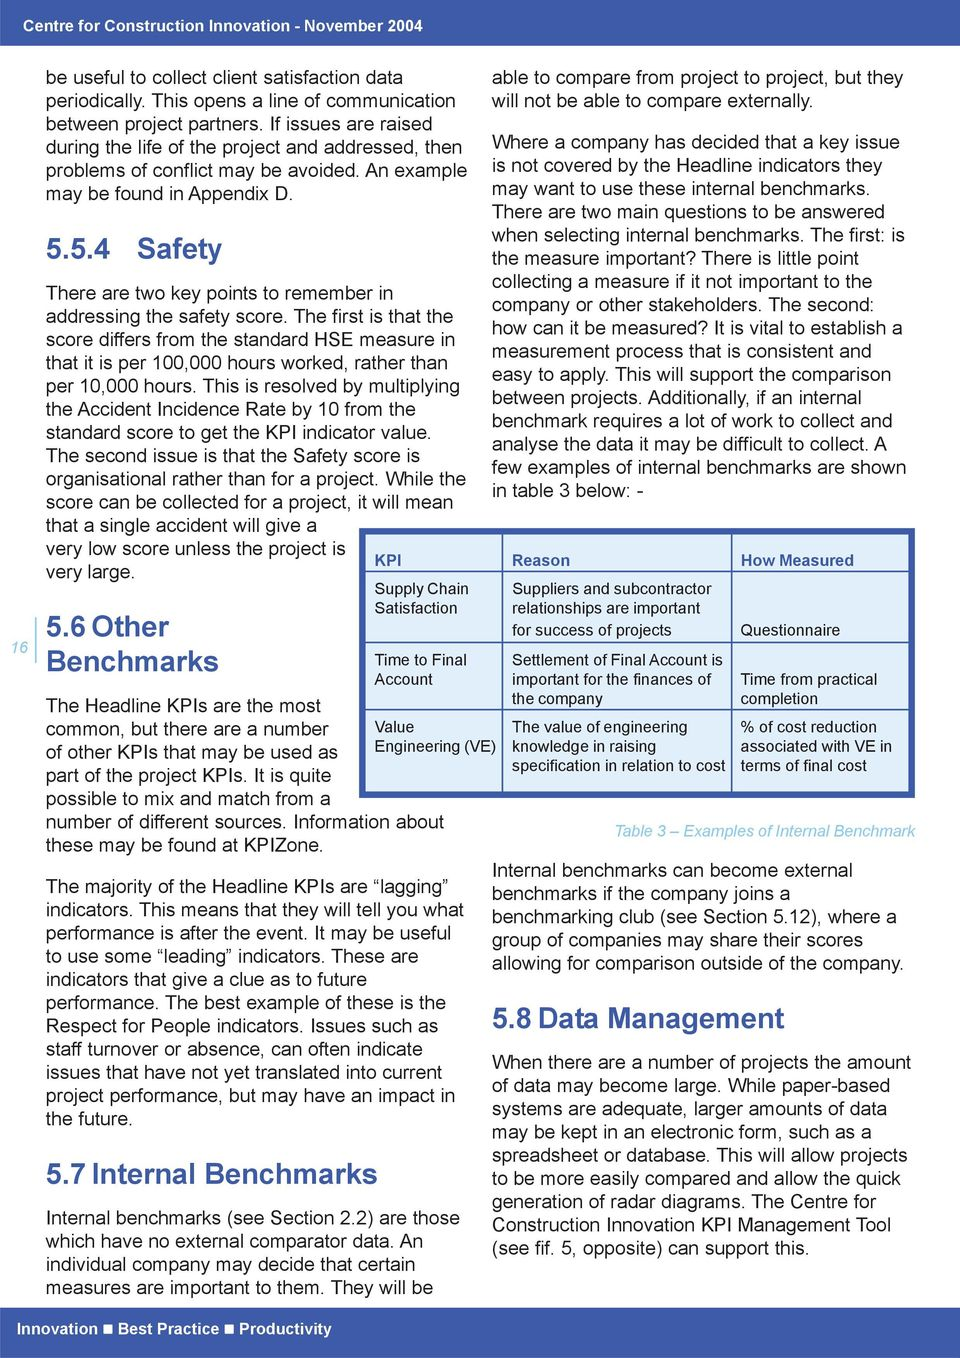 5.4 Safety There are two key points to remember in addressing the safety score.